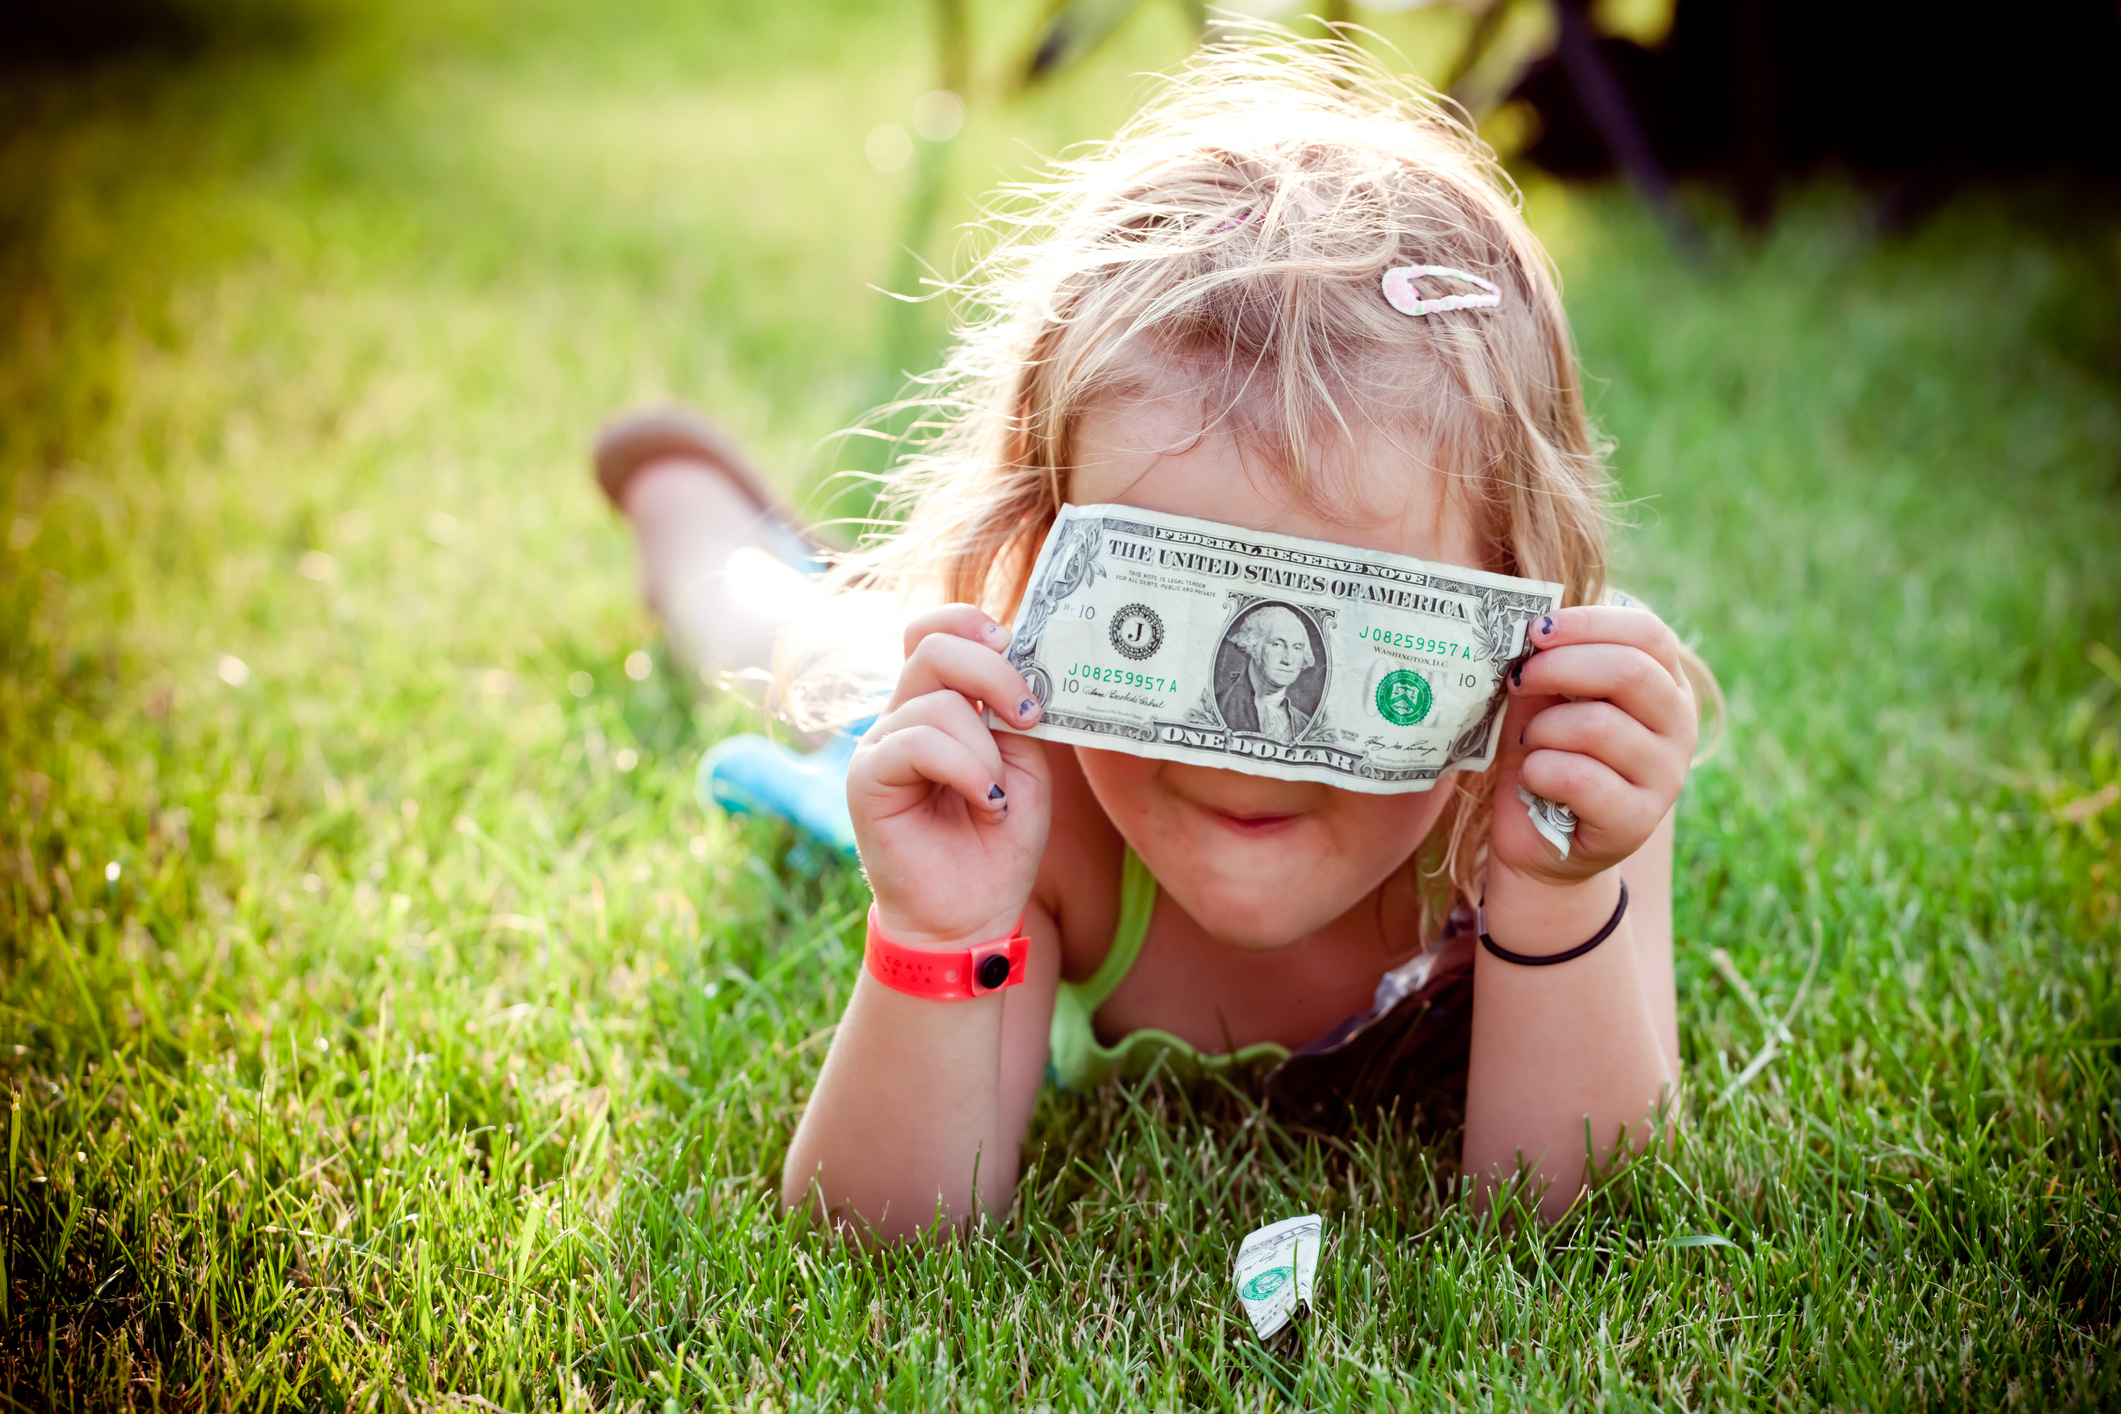 It's never too early to teach kids about finances!